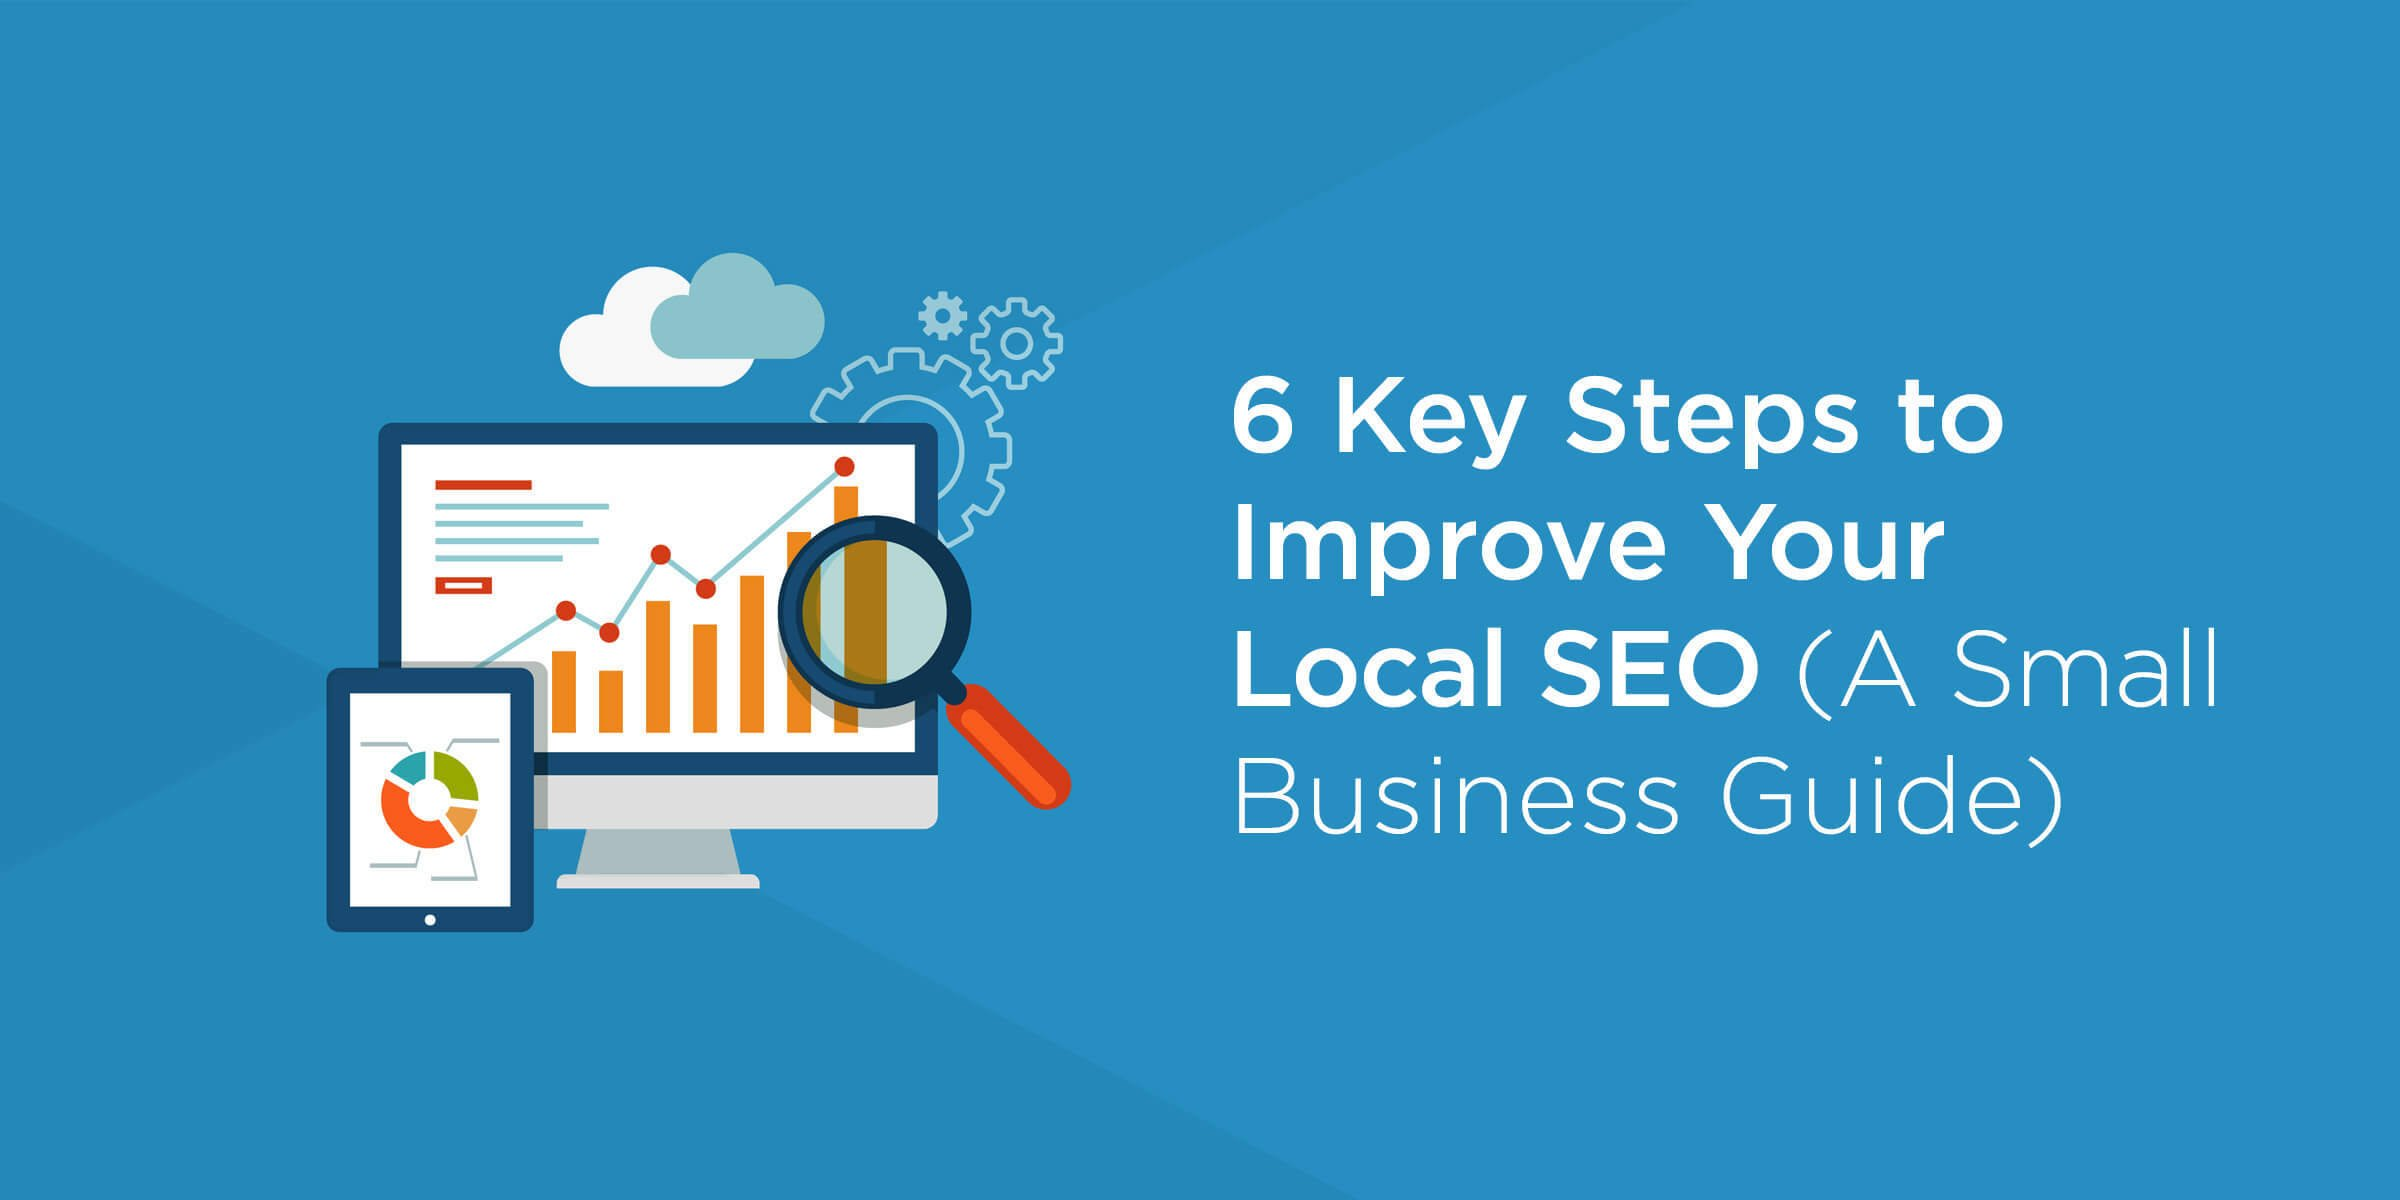 6 Key Steps to Improve Your Local SEO (A Small Business Guide) – McBreen Marketing Fort Collins, CO